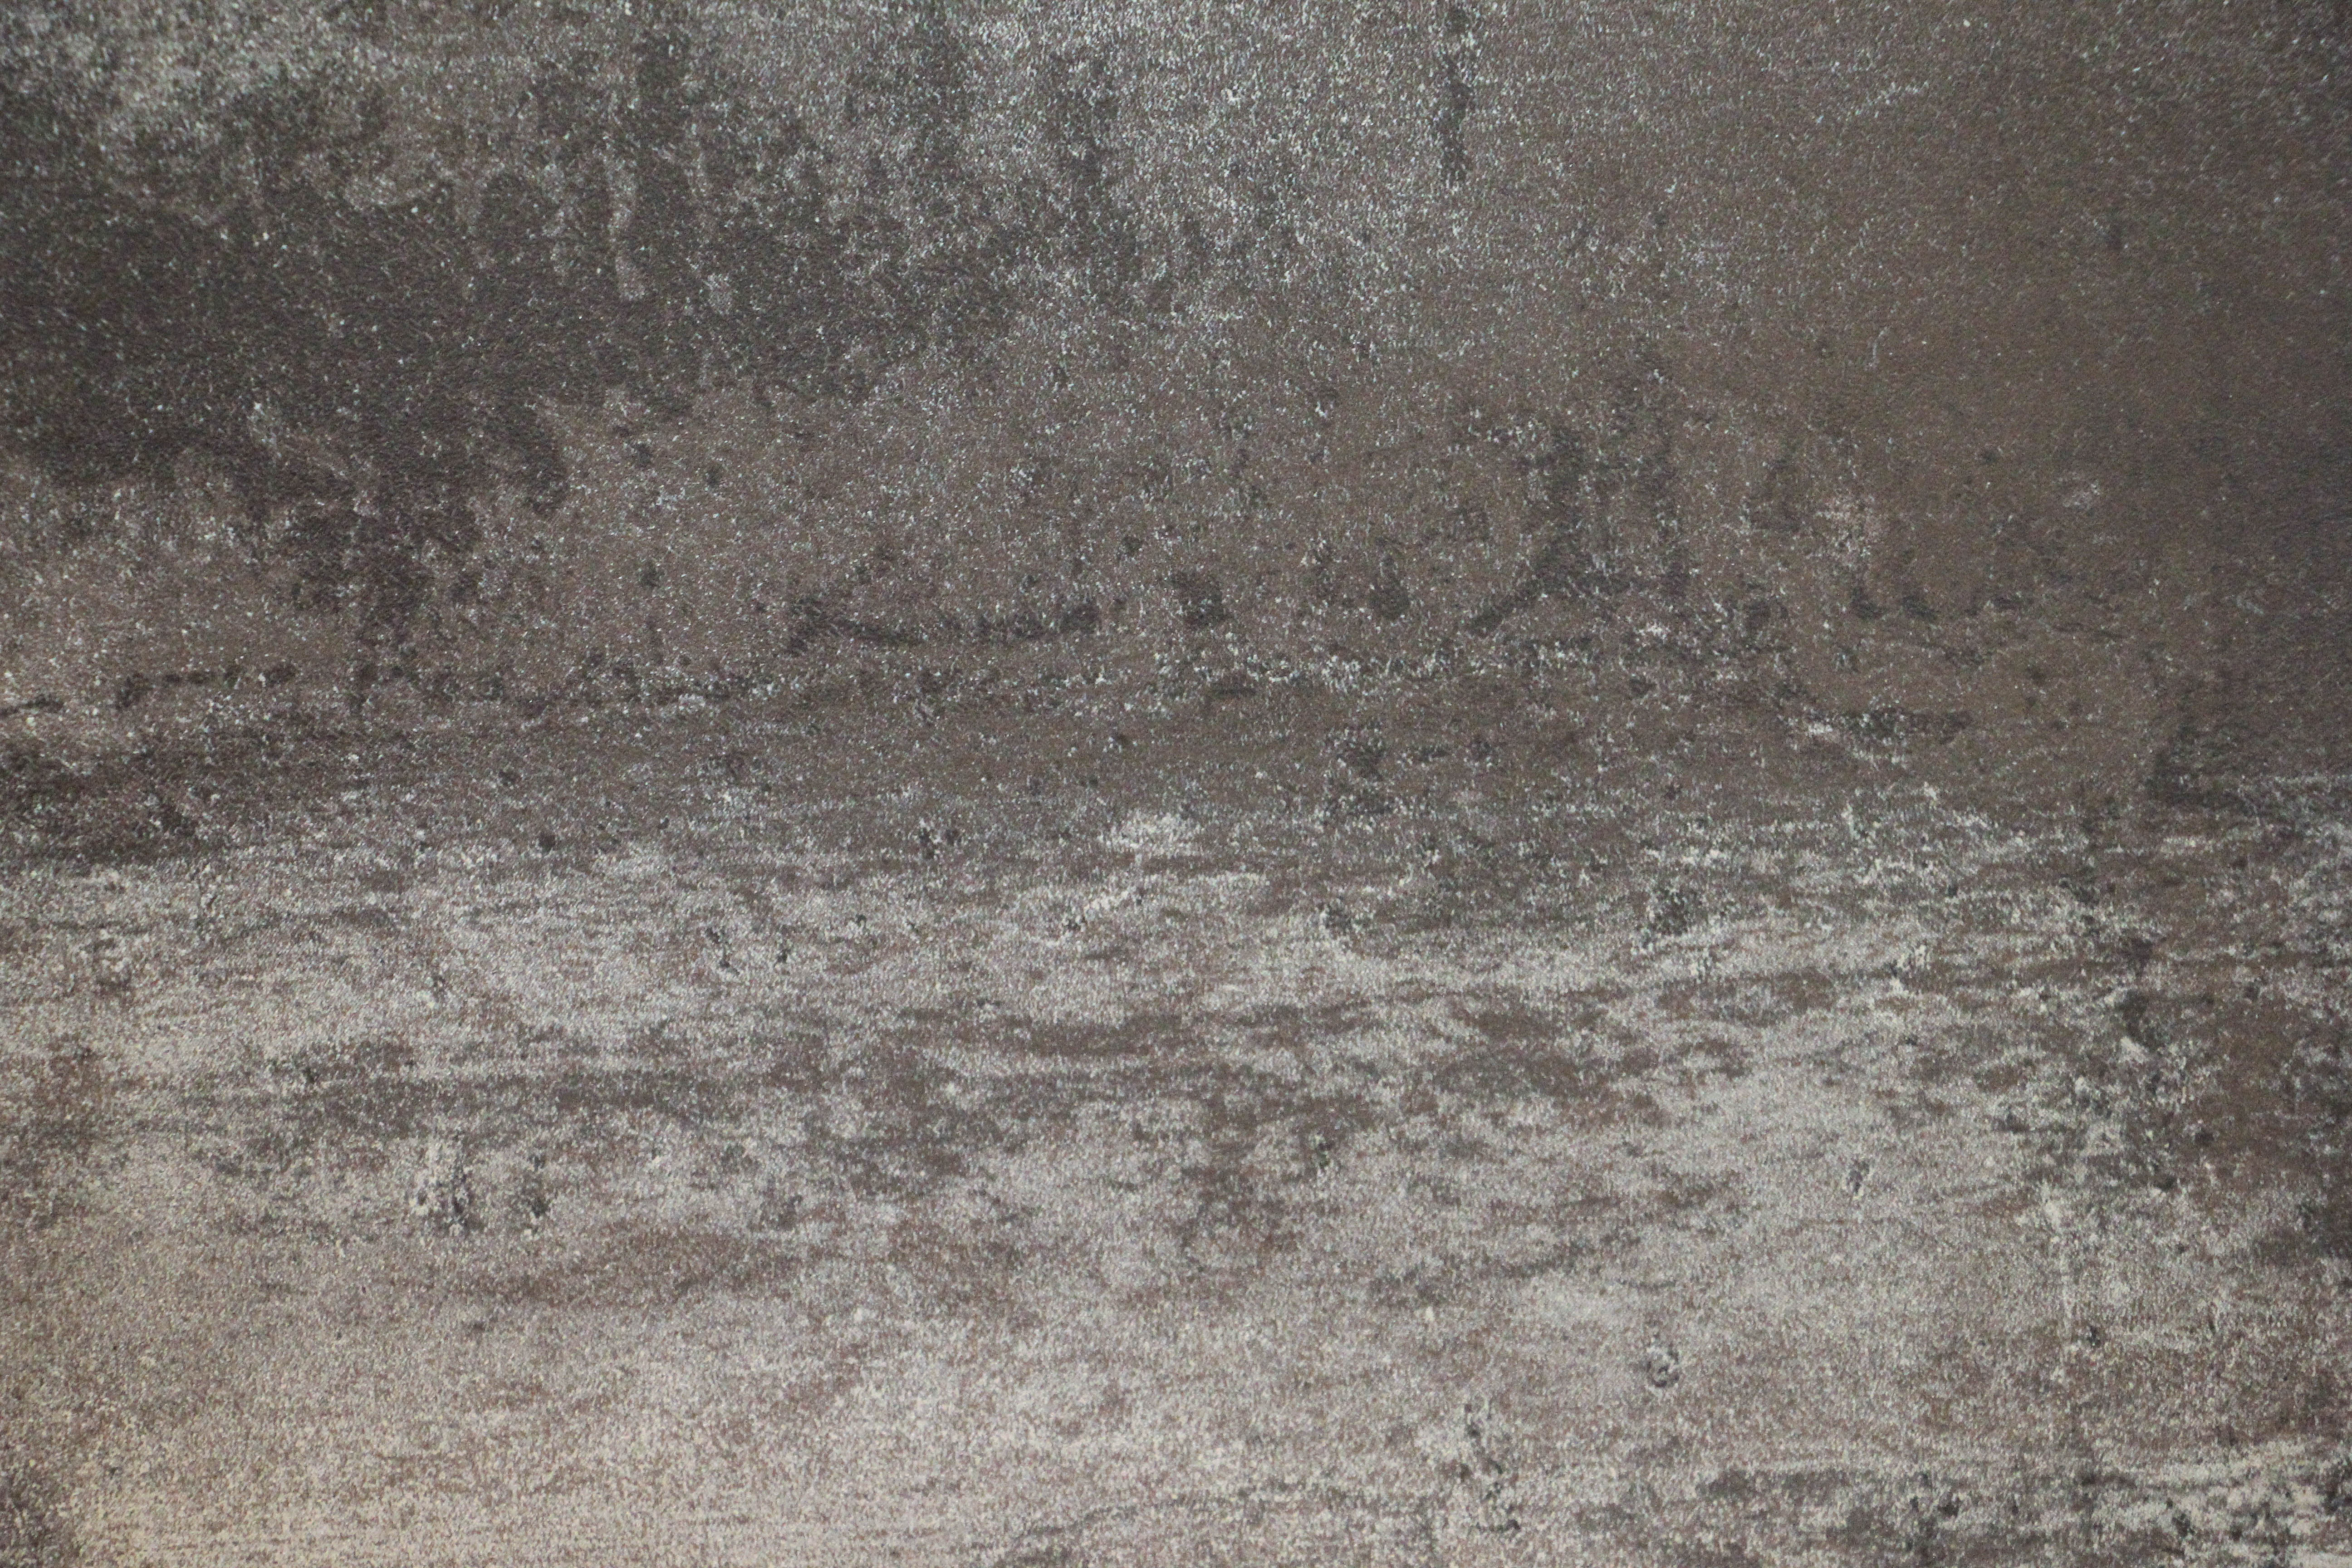 grey grunge texture rough concrete floor dirty stock photo surface texturex free and premium textures high resolution graphics h65 concrete